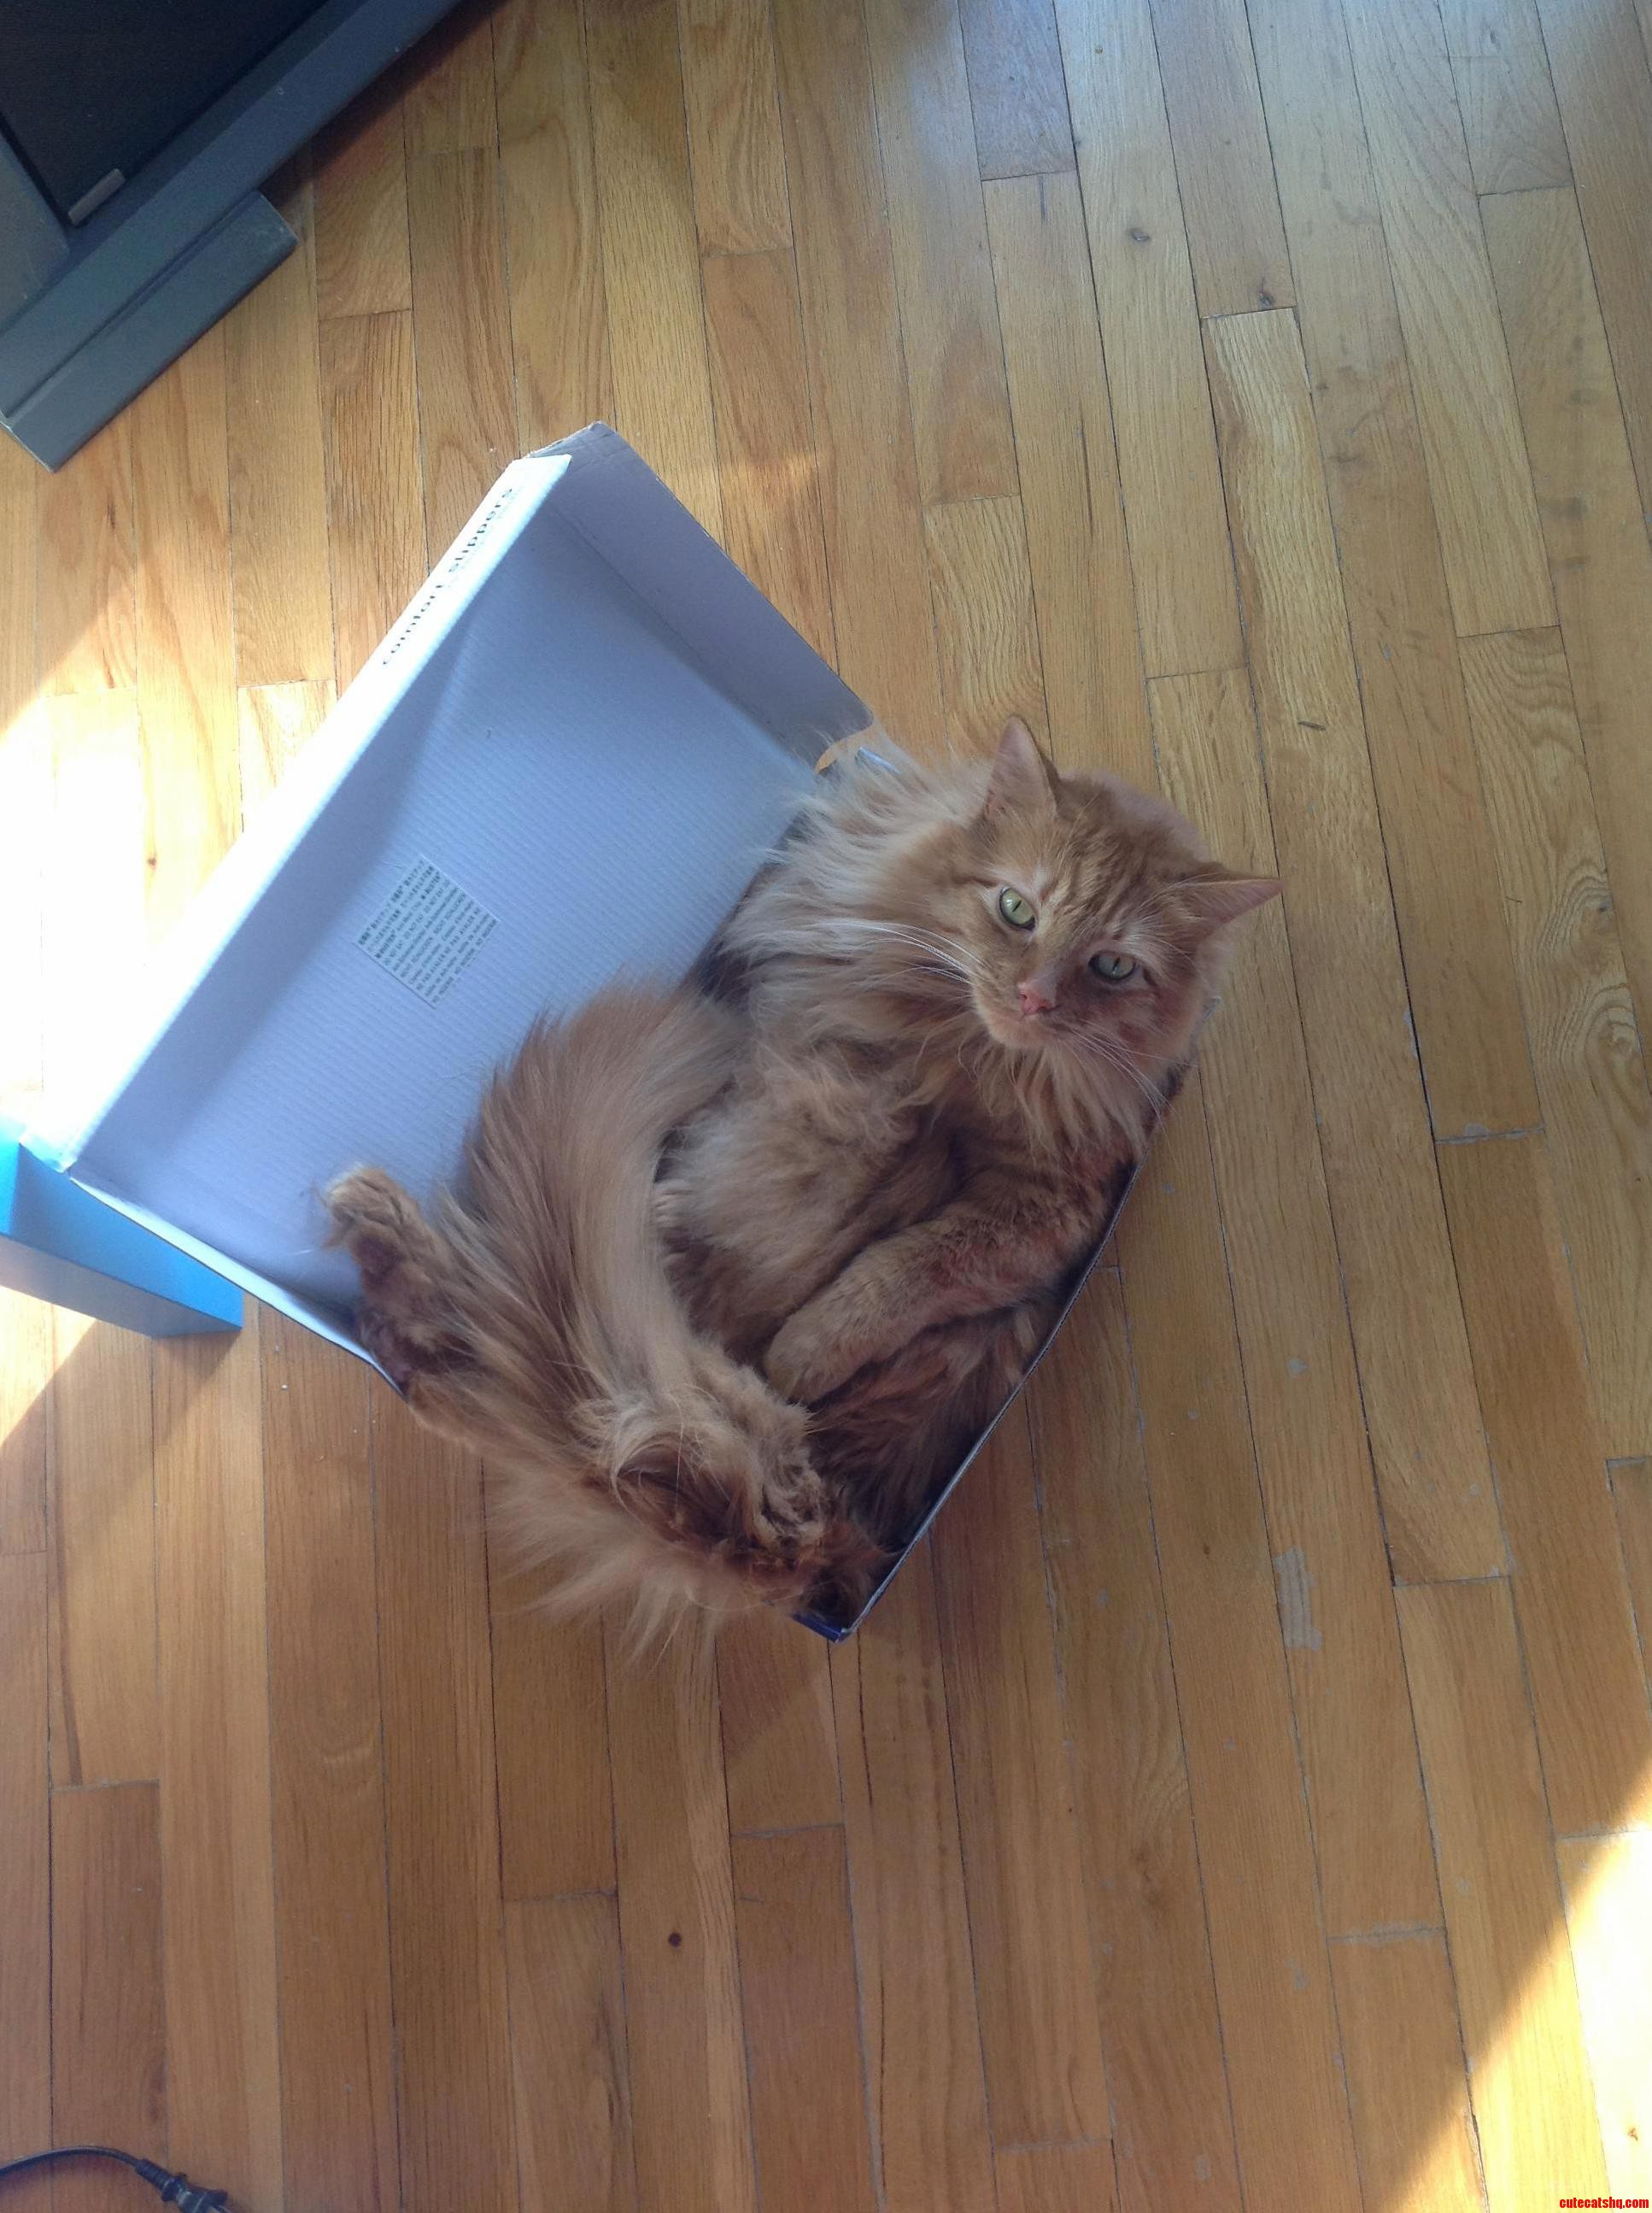 Hobbes really loves lying in his box